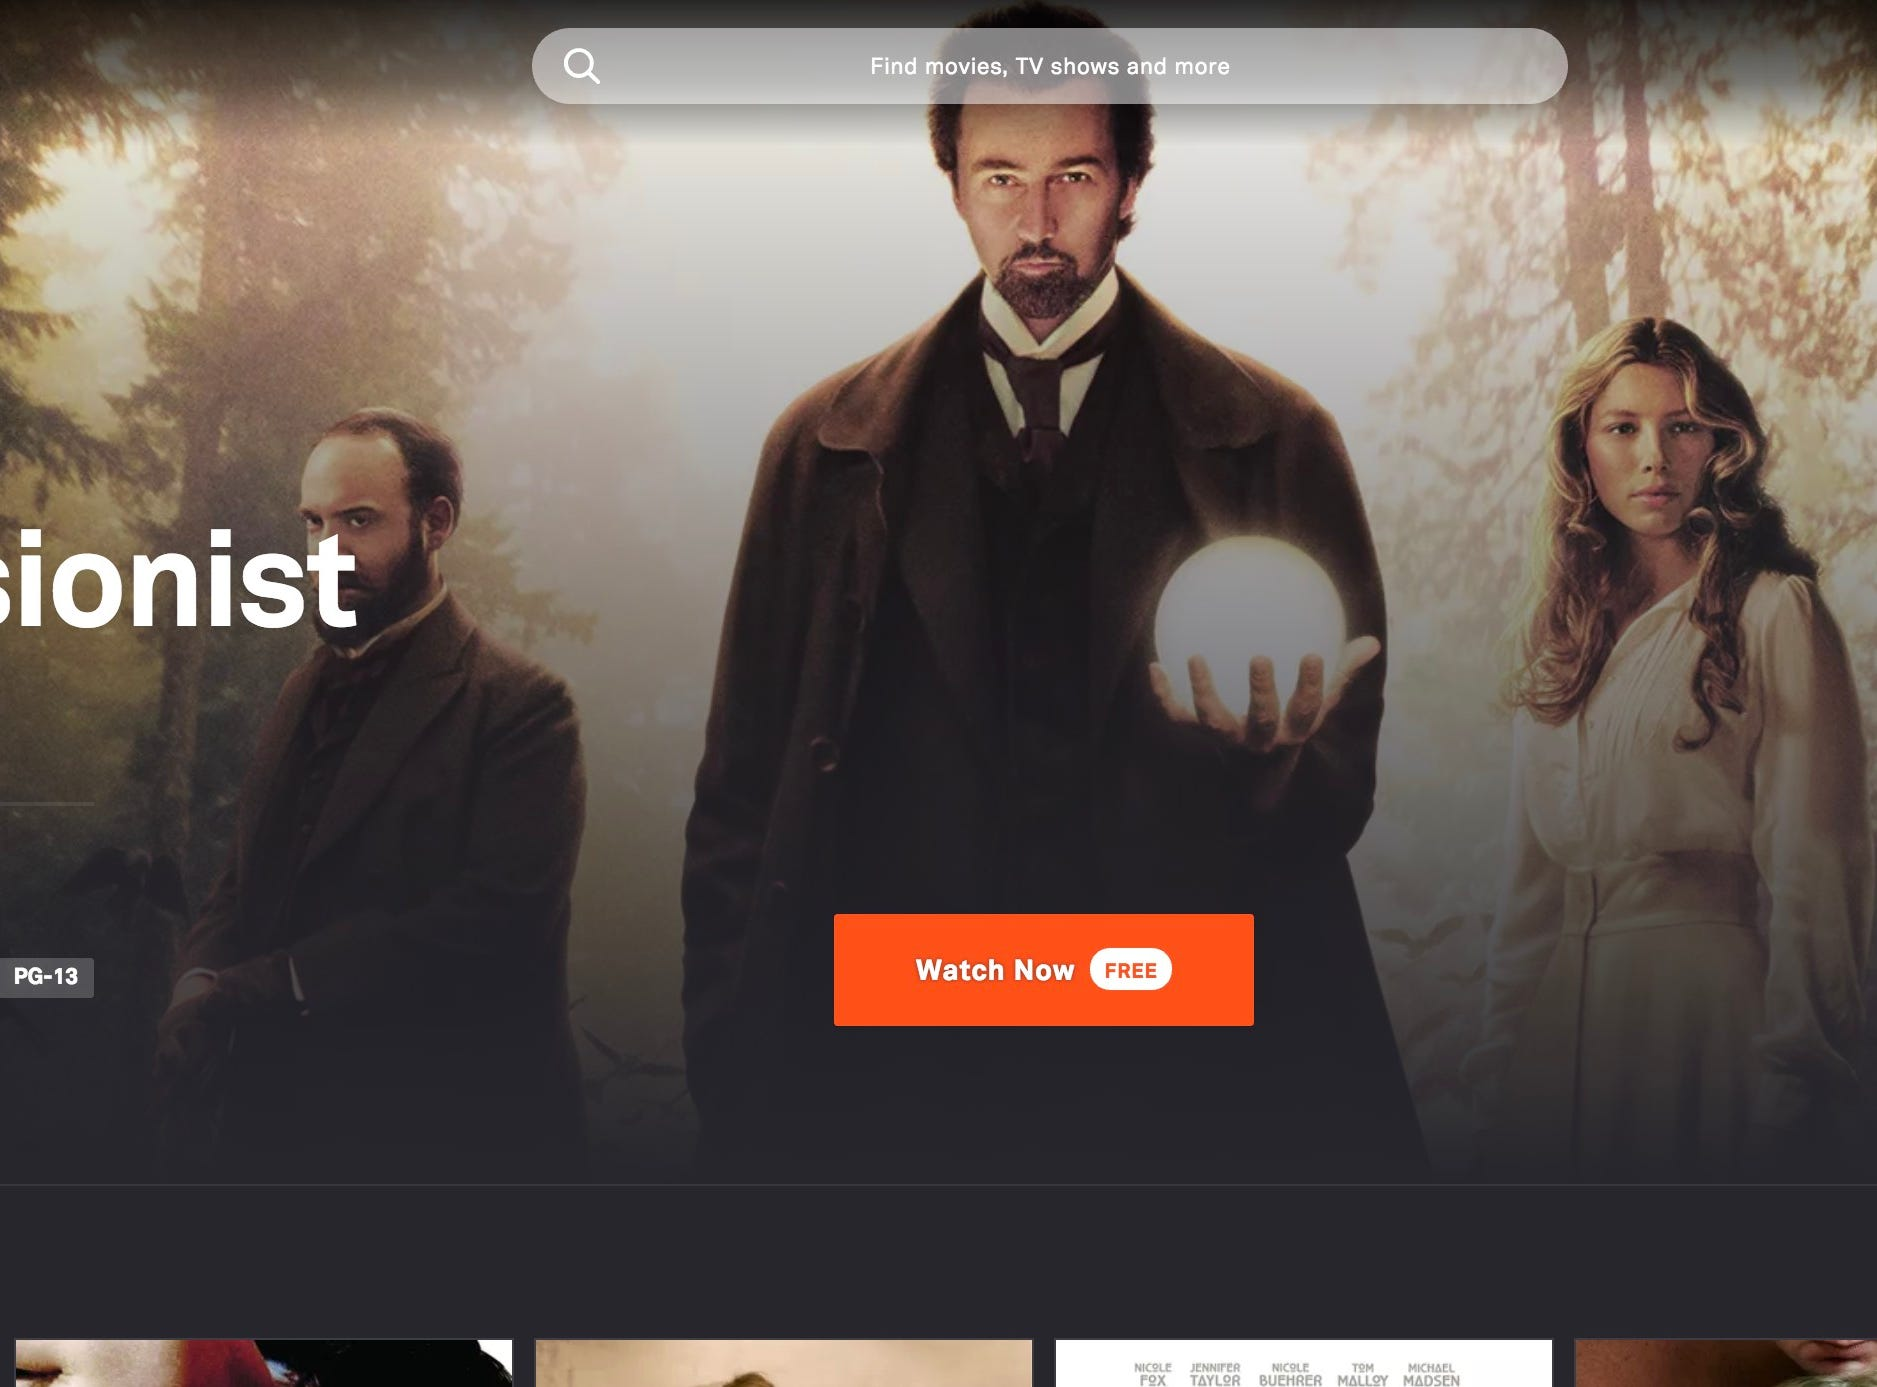 Home screen for the Tubi free streaming service